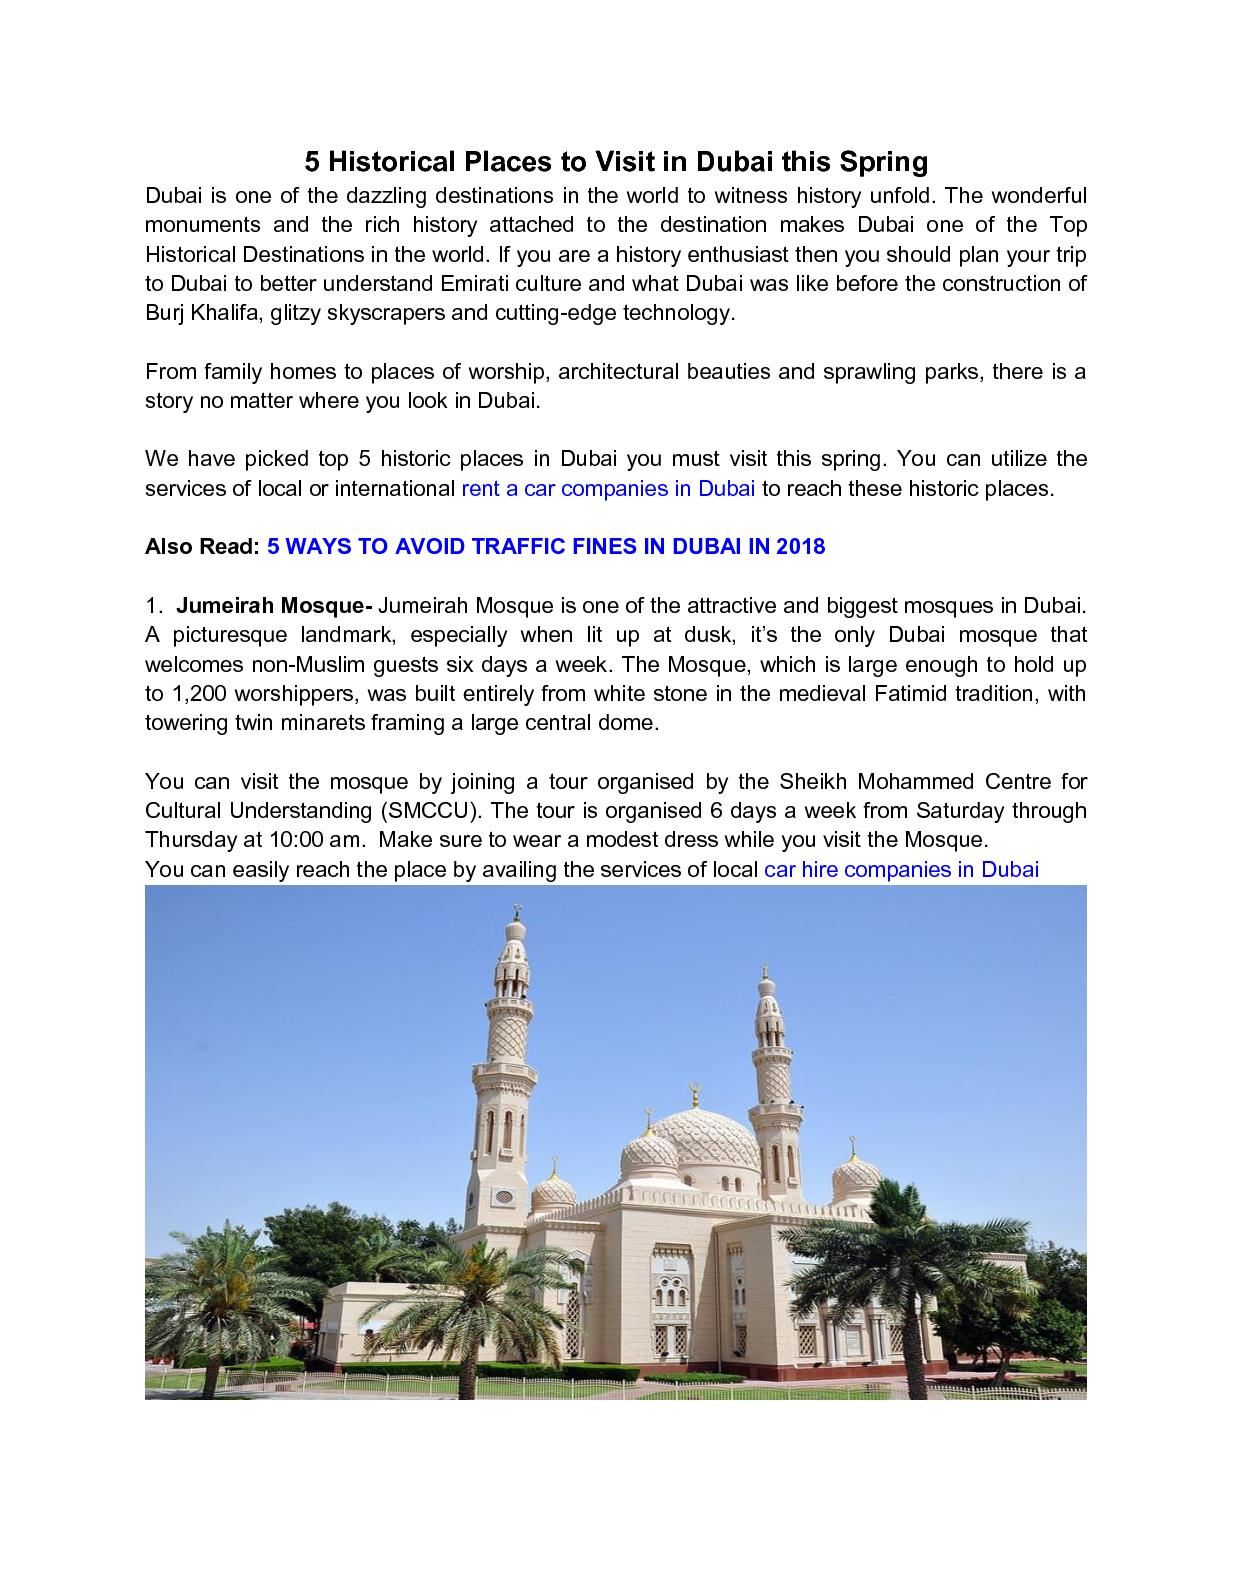 Calaméo - 5 Historical Places To Visit In Dubai This Spring